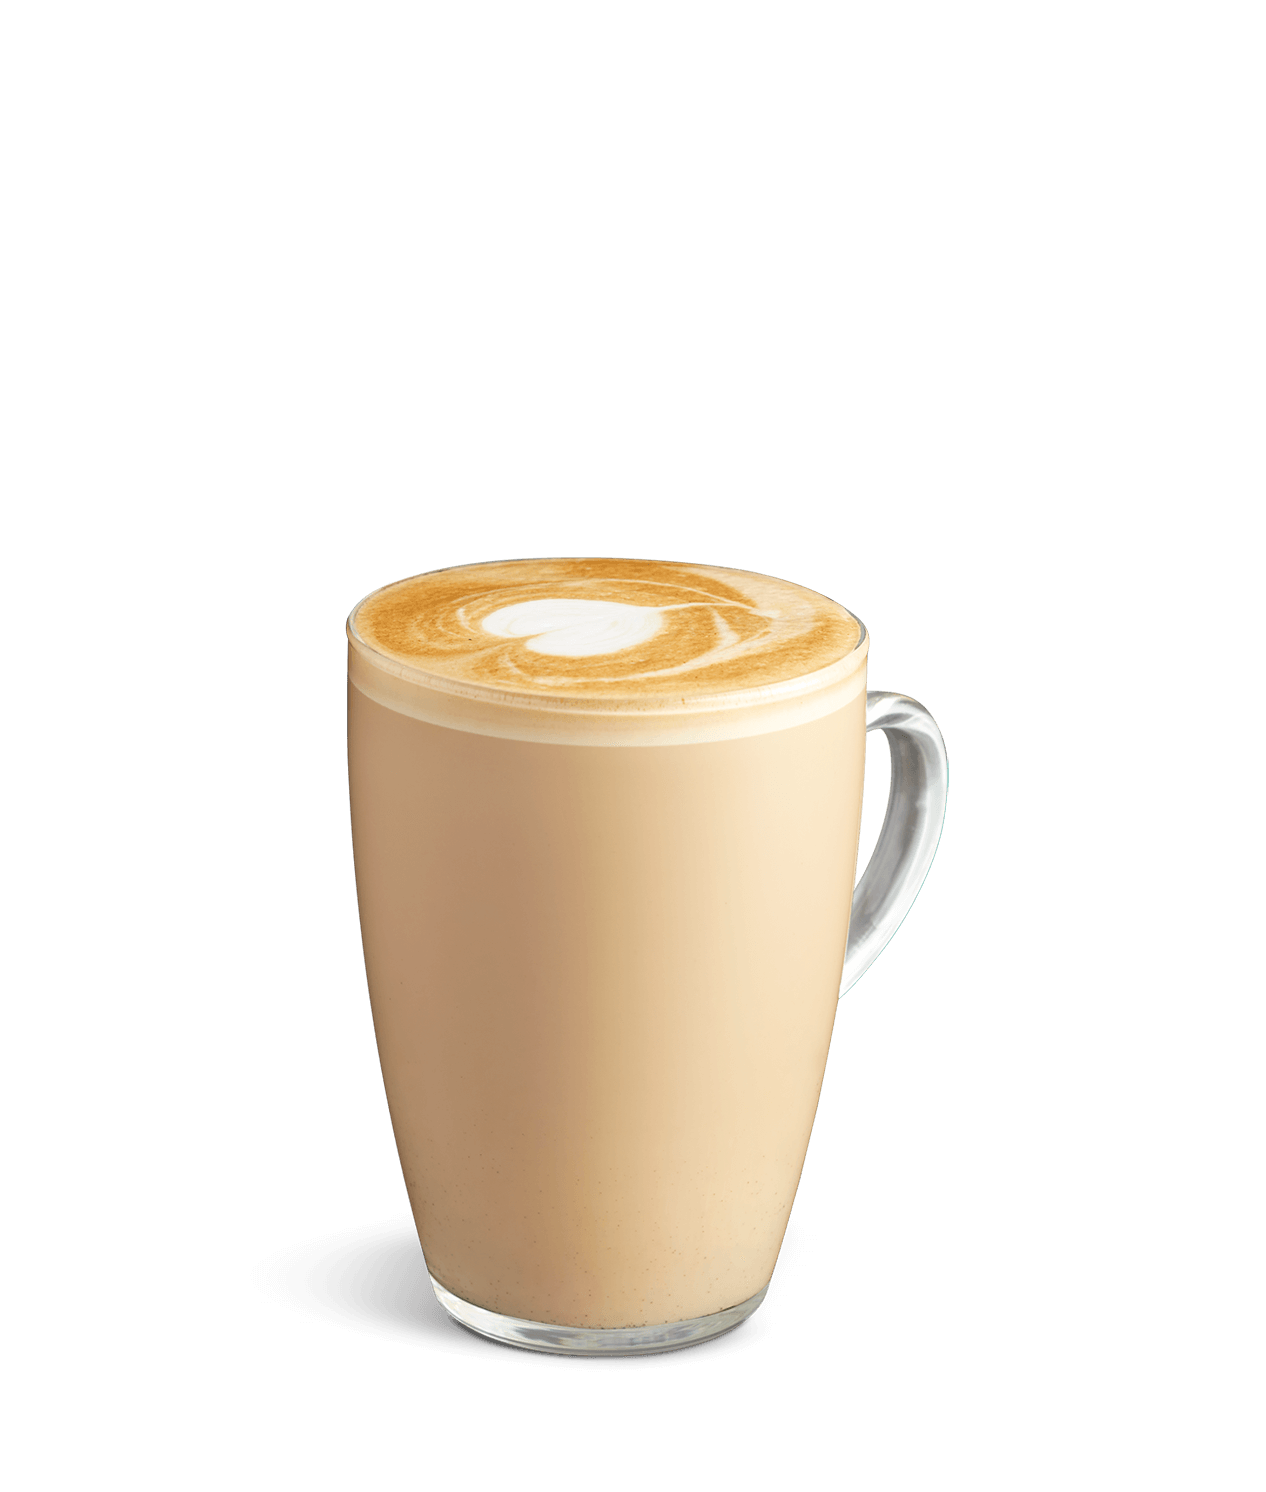 Caffe Latte Peet S Coffee